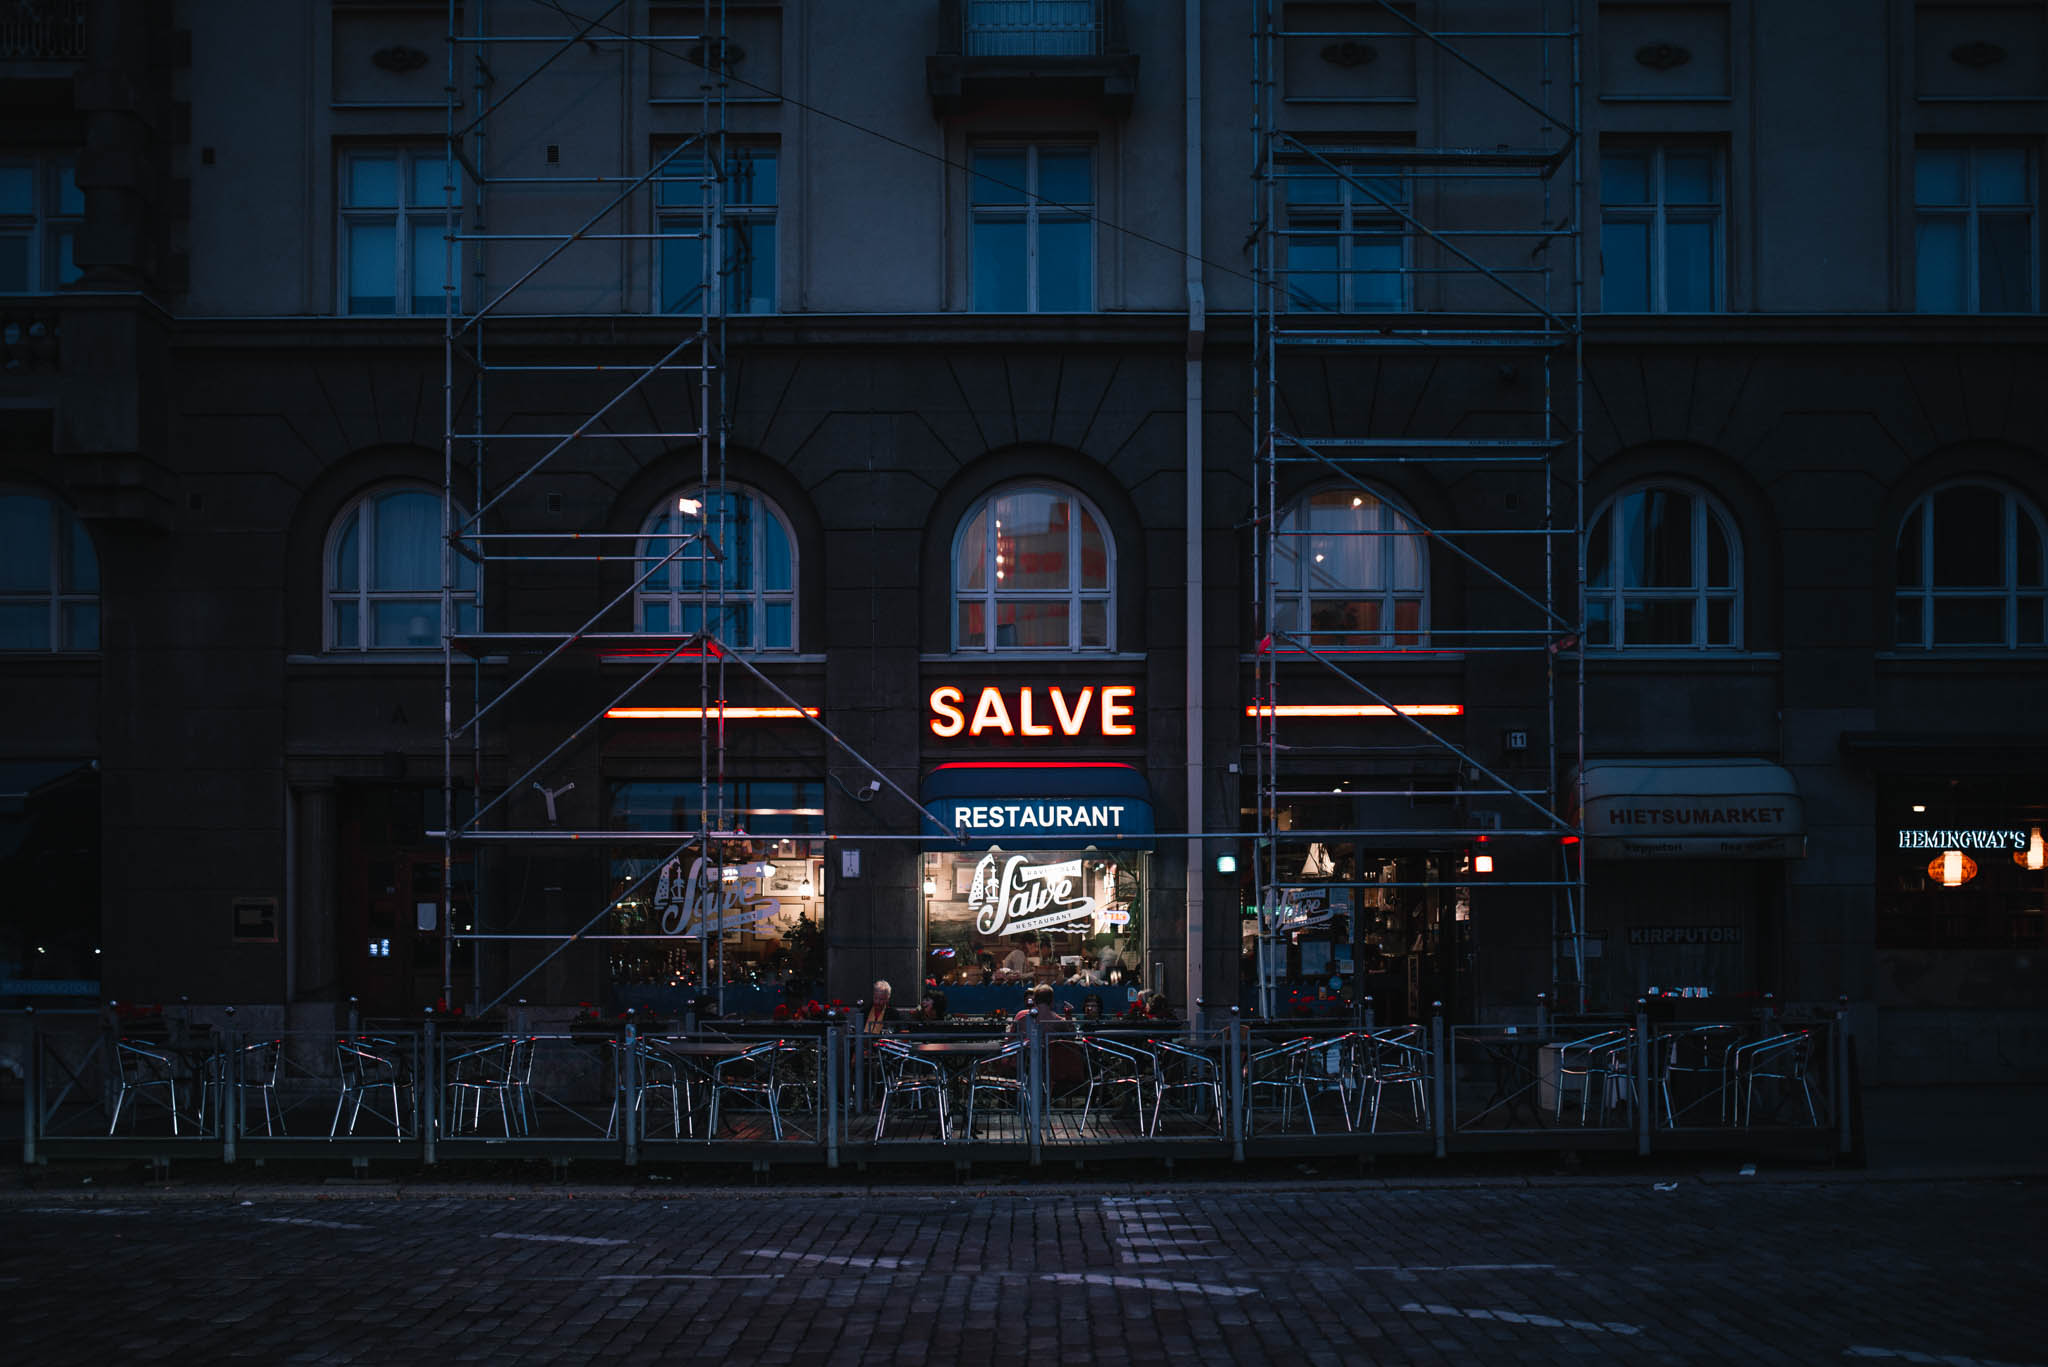 Restaurant Salve for Hok-Elanto